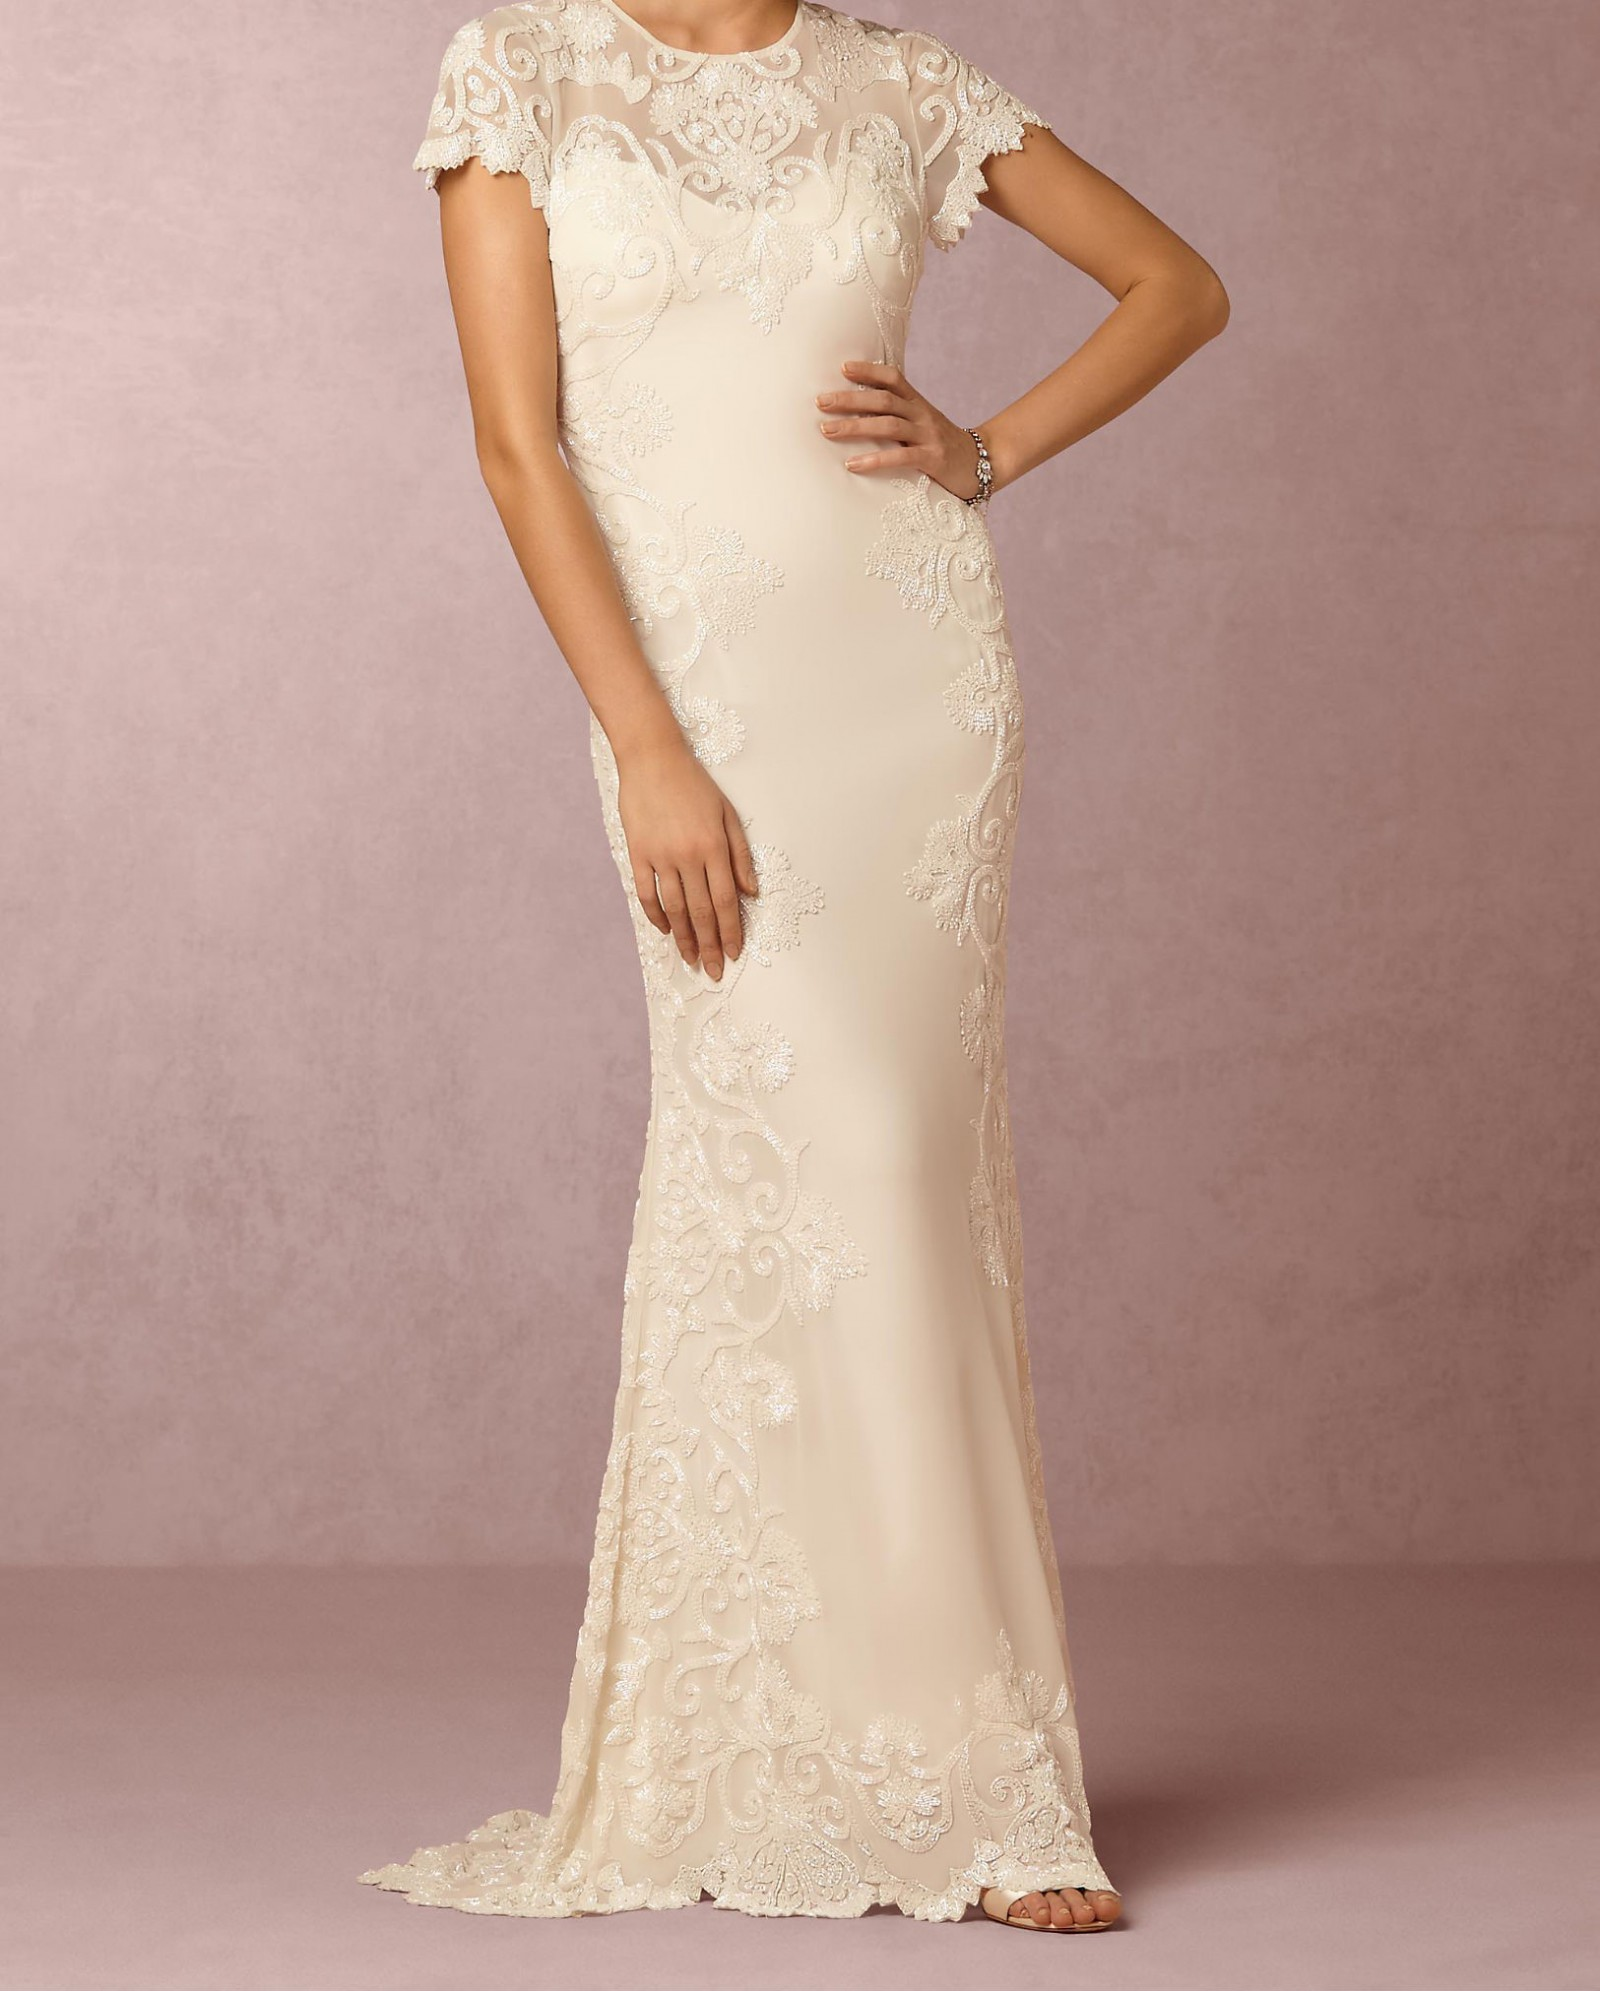 Bhldn jade gown style 39007893 second hand wedding dress for Second hand wedding dresses for sale